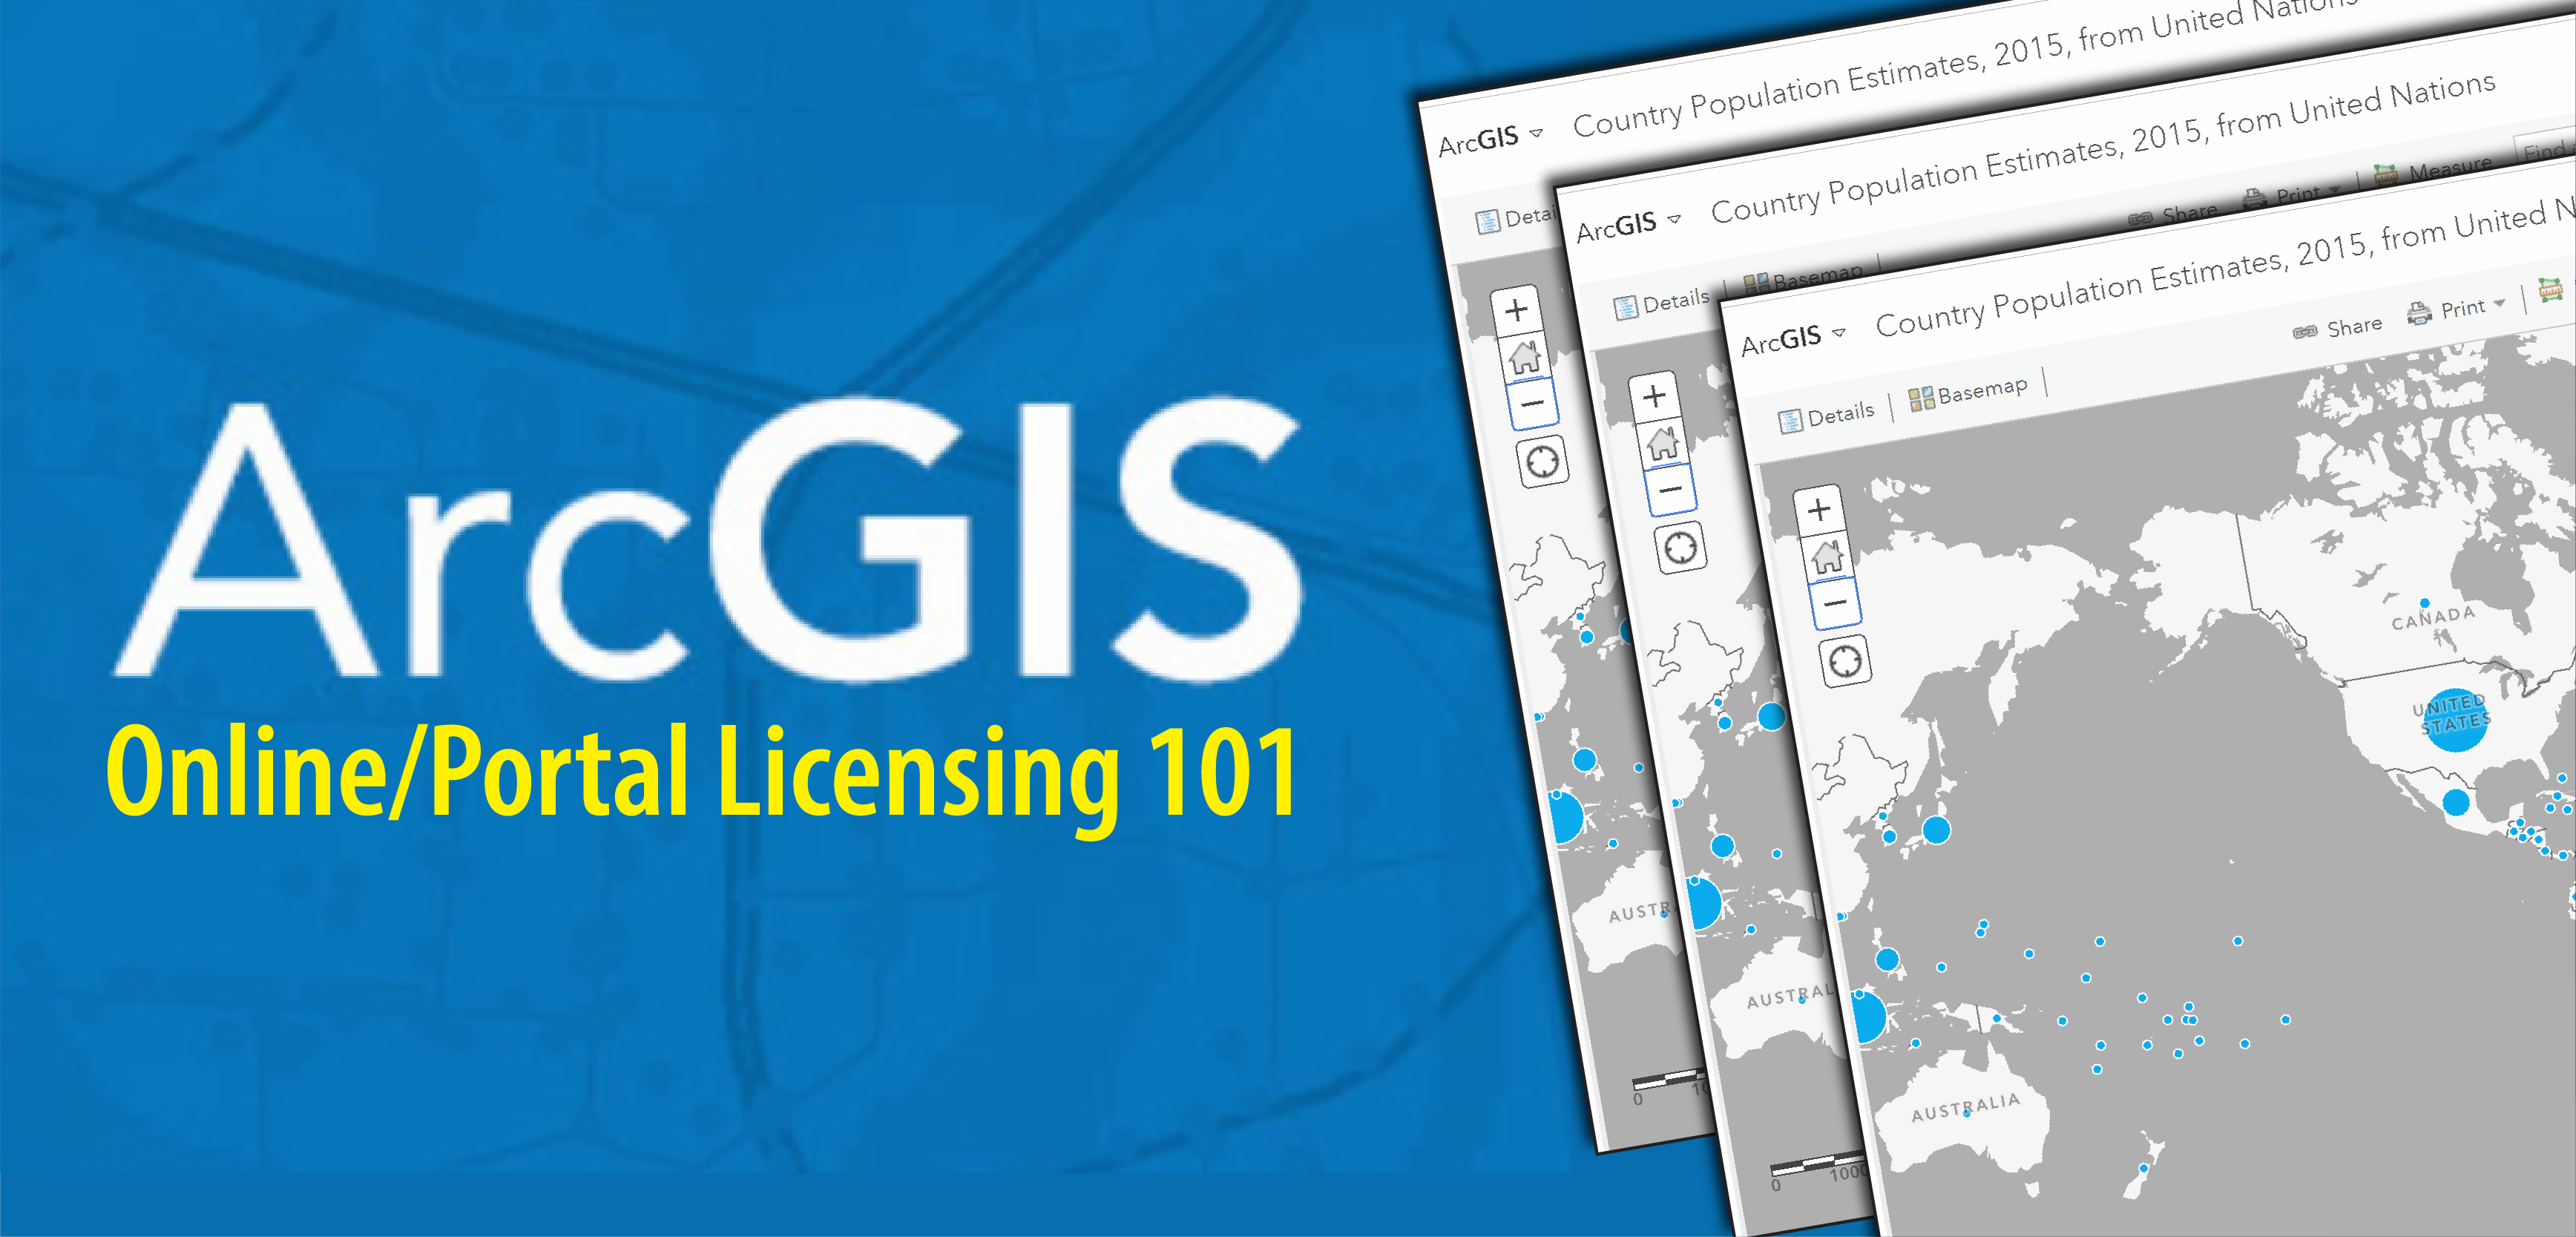 ArcGIS Online/Portal Licensing 101 - SSP Innovations